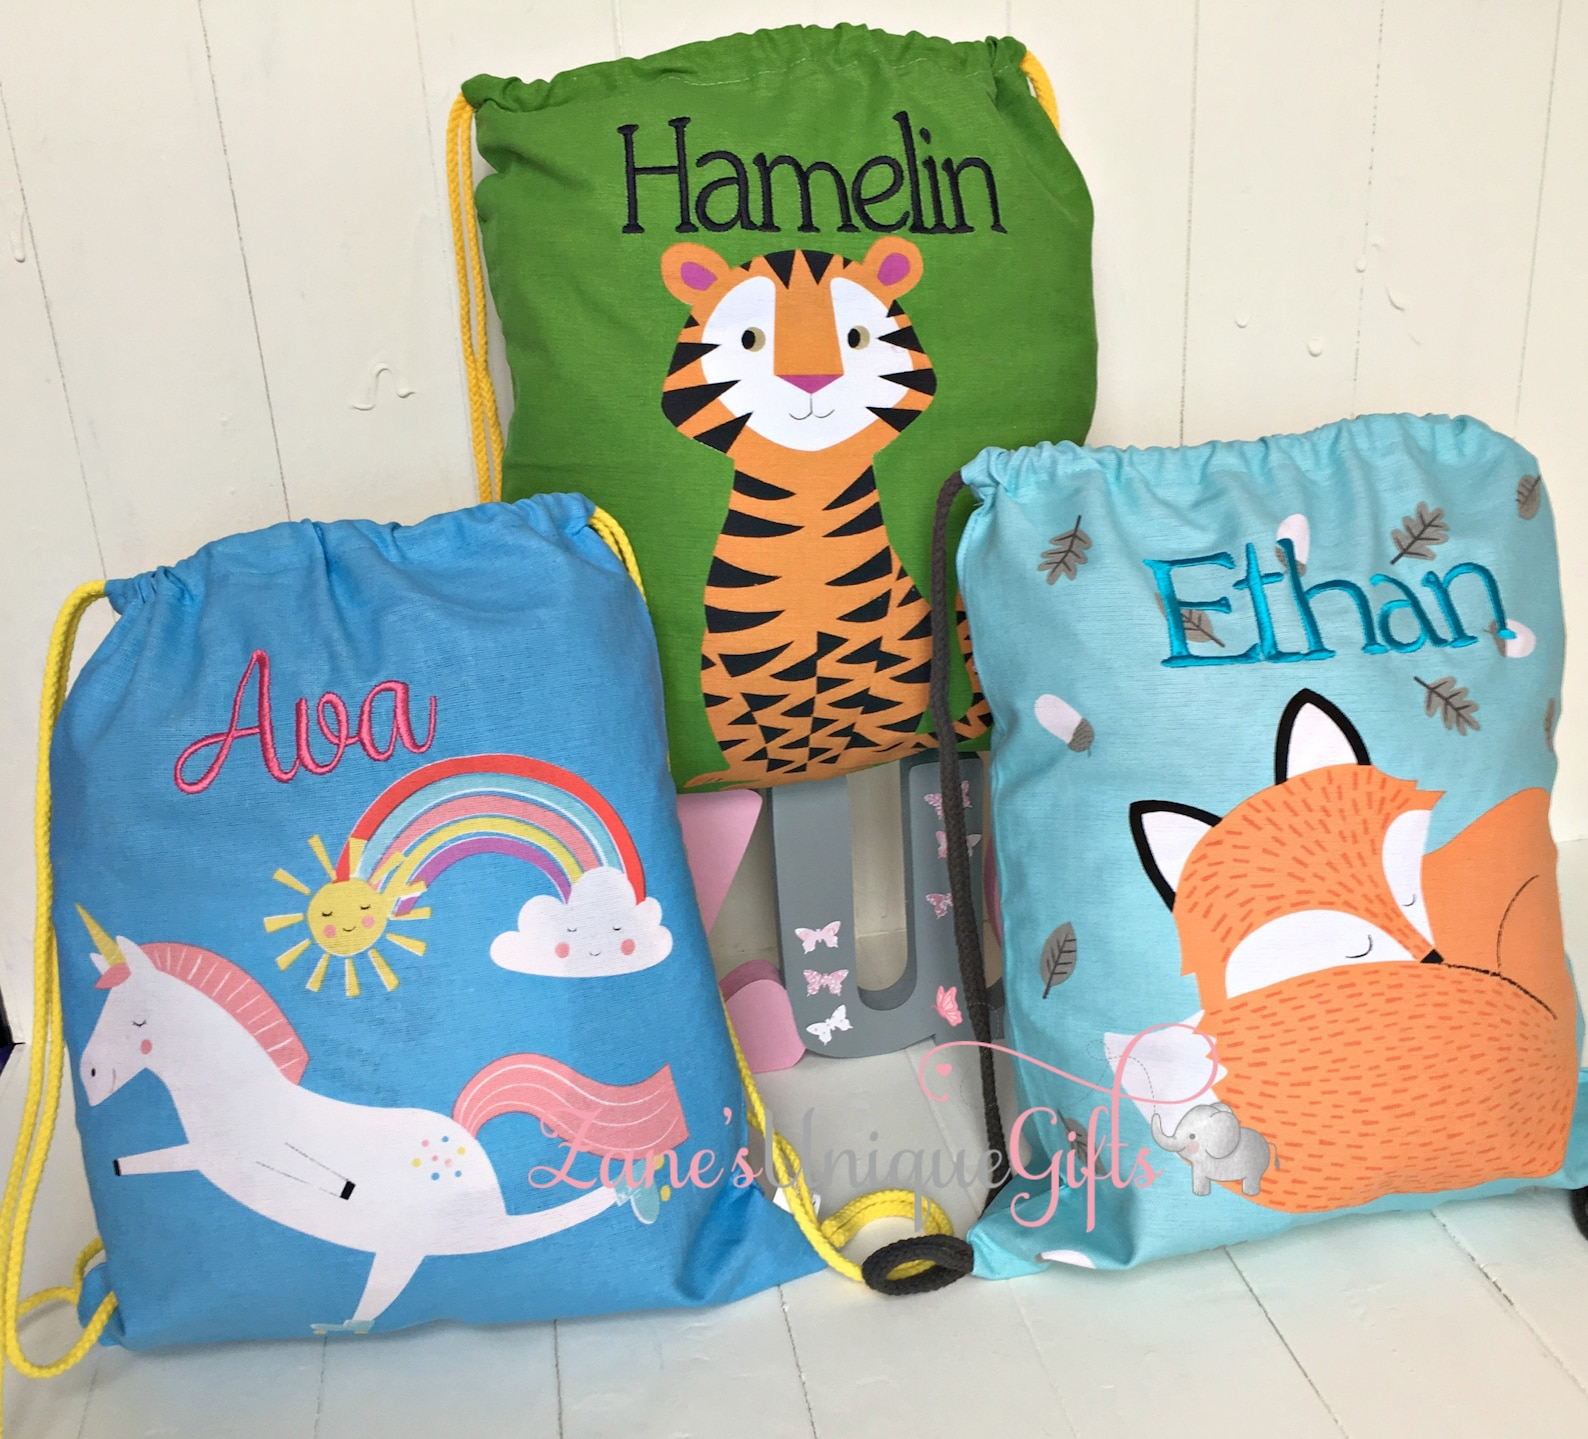 Personalised kids drawstring bags